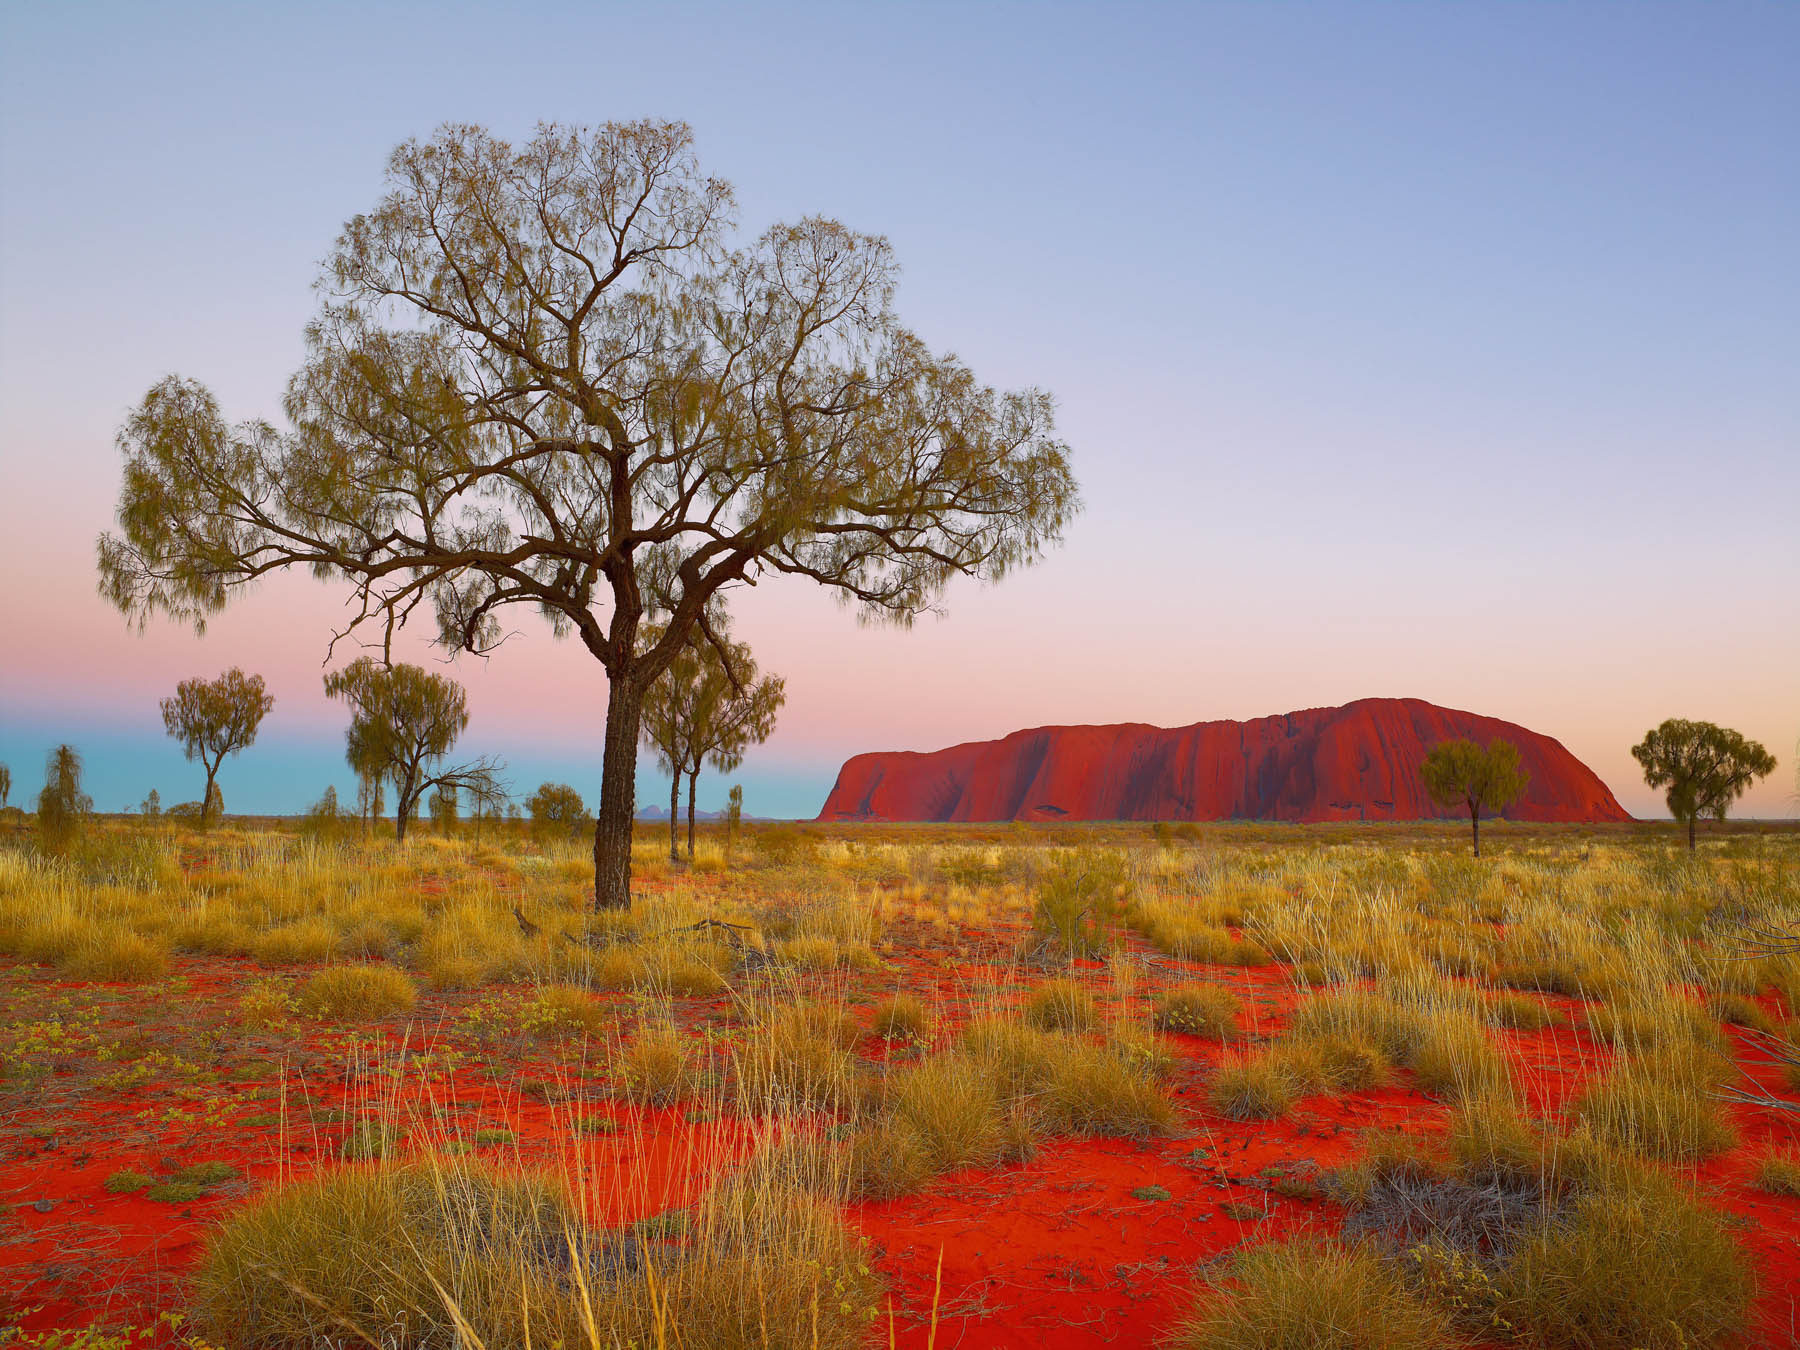 Uluru glowing in the pastel hues of sunset.